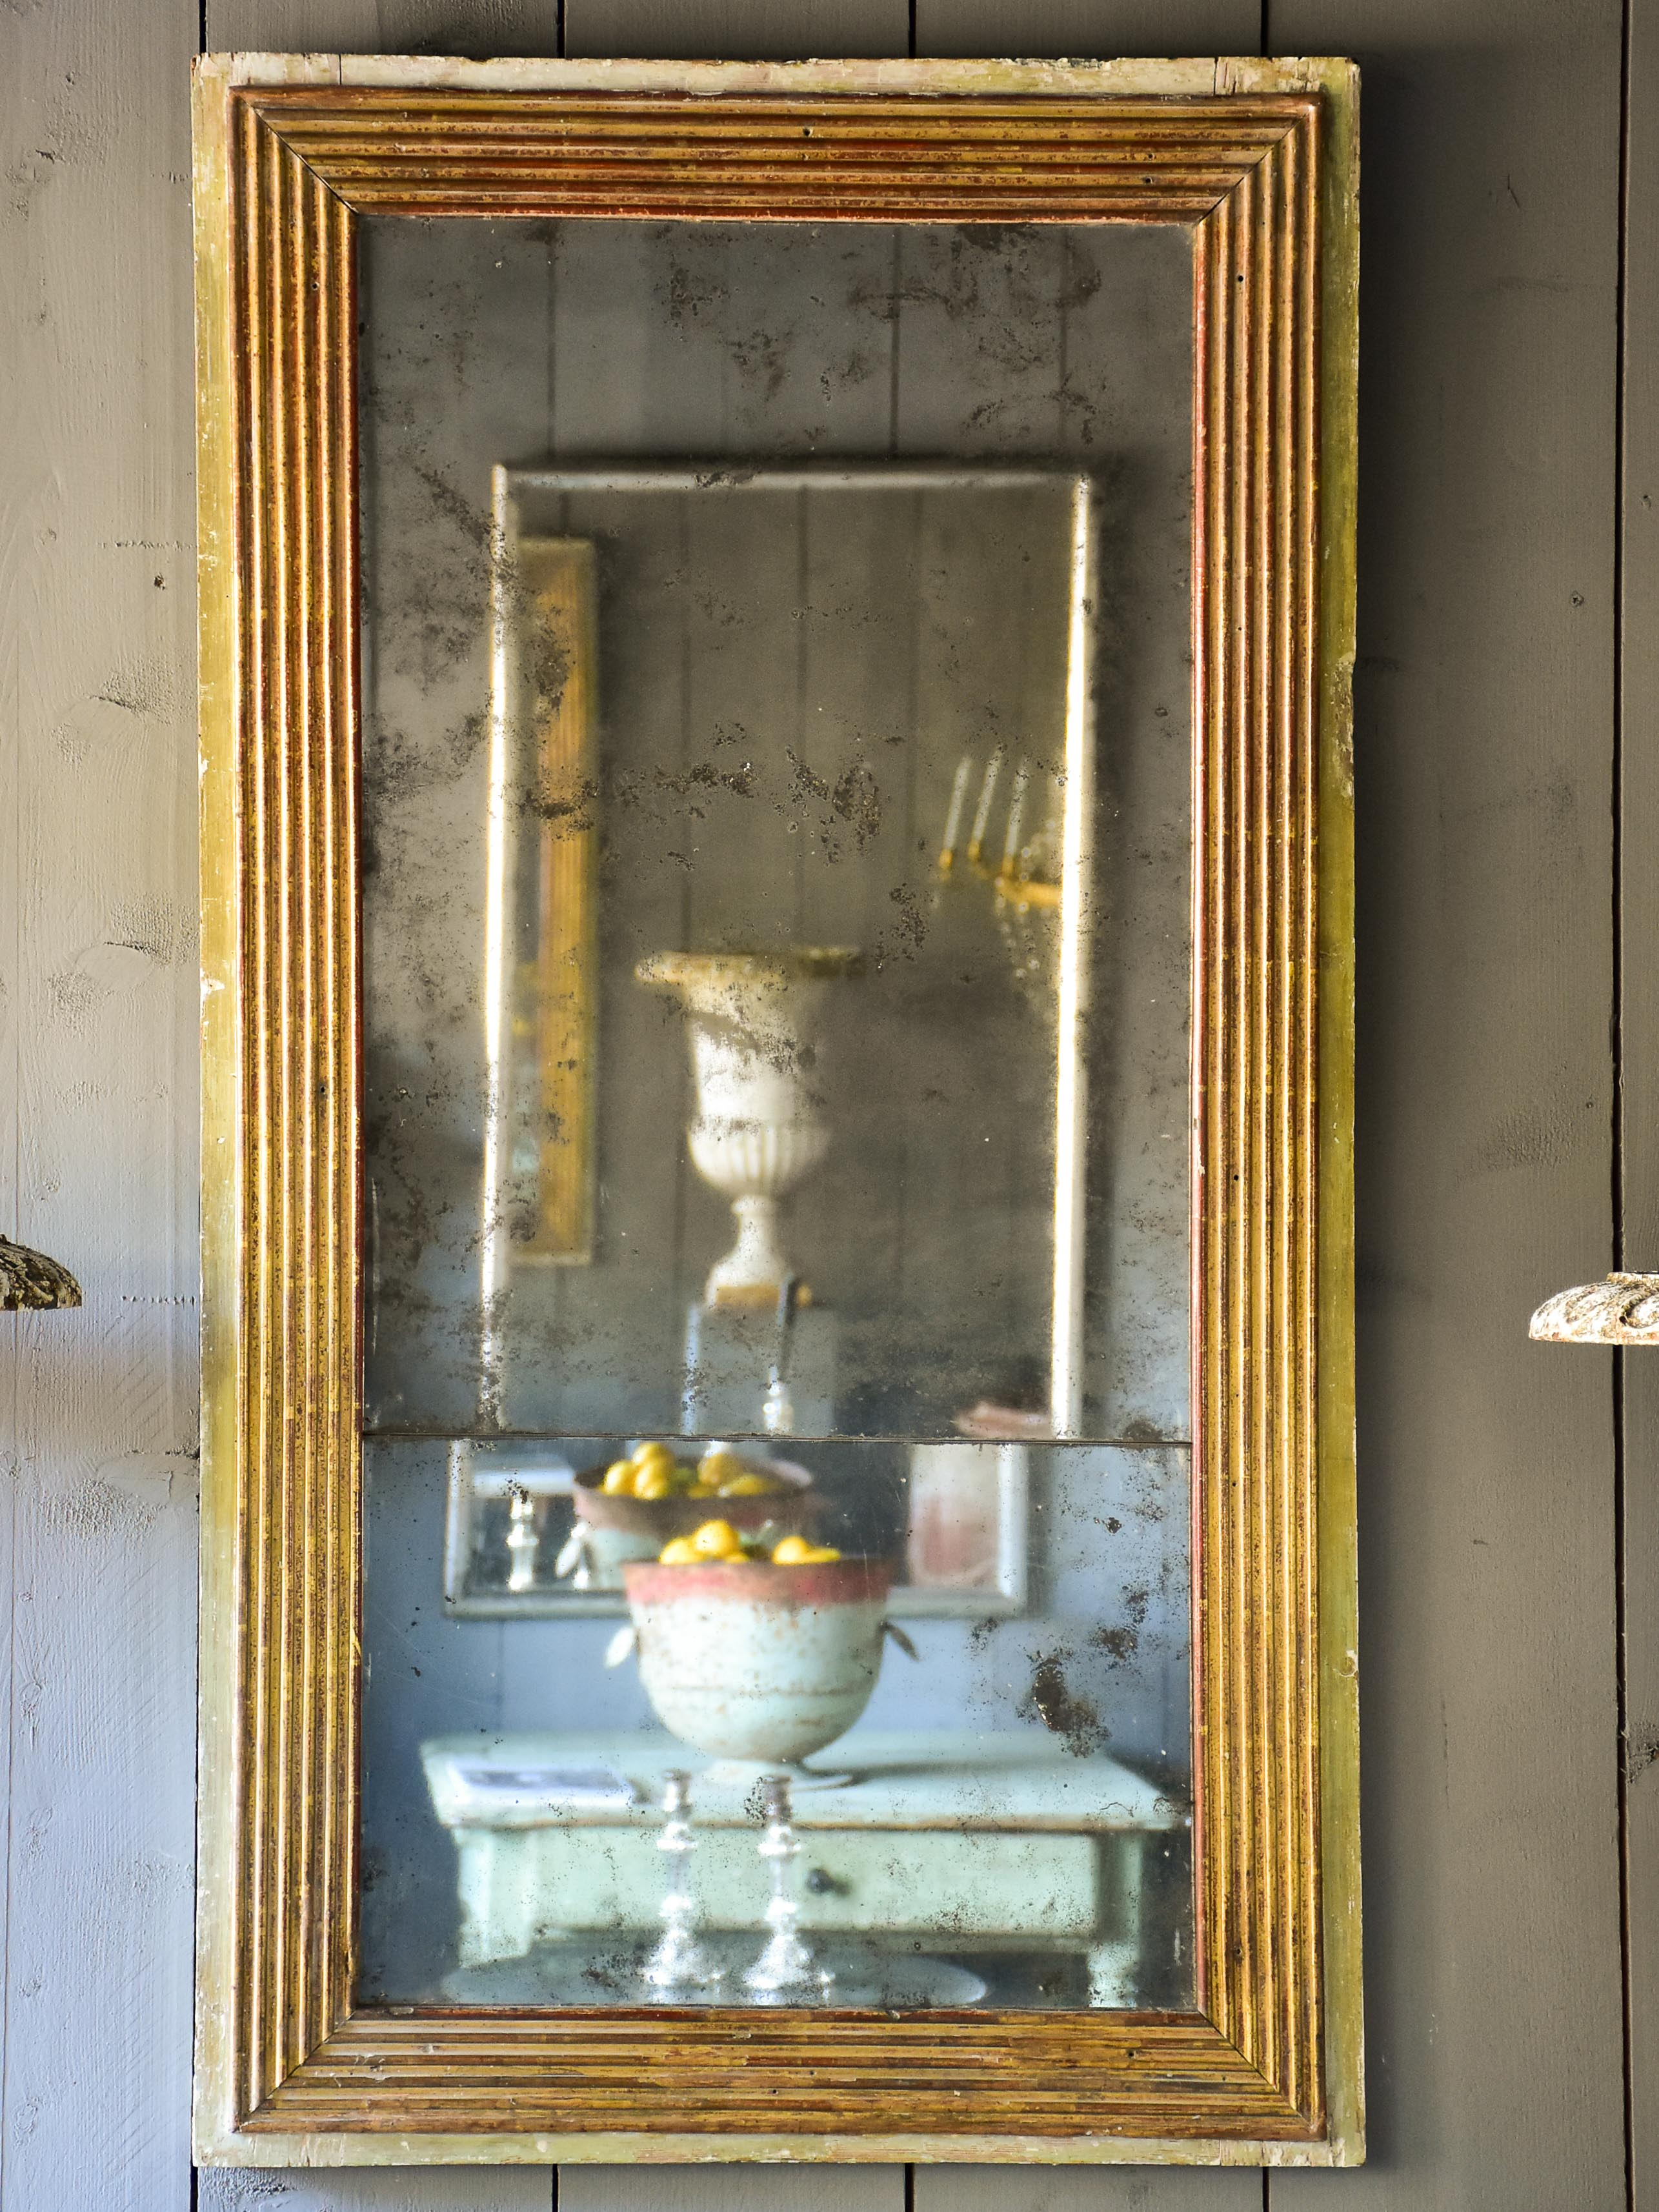 Late 18th century Louis XVI mirror with paneled glass